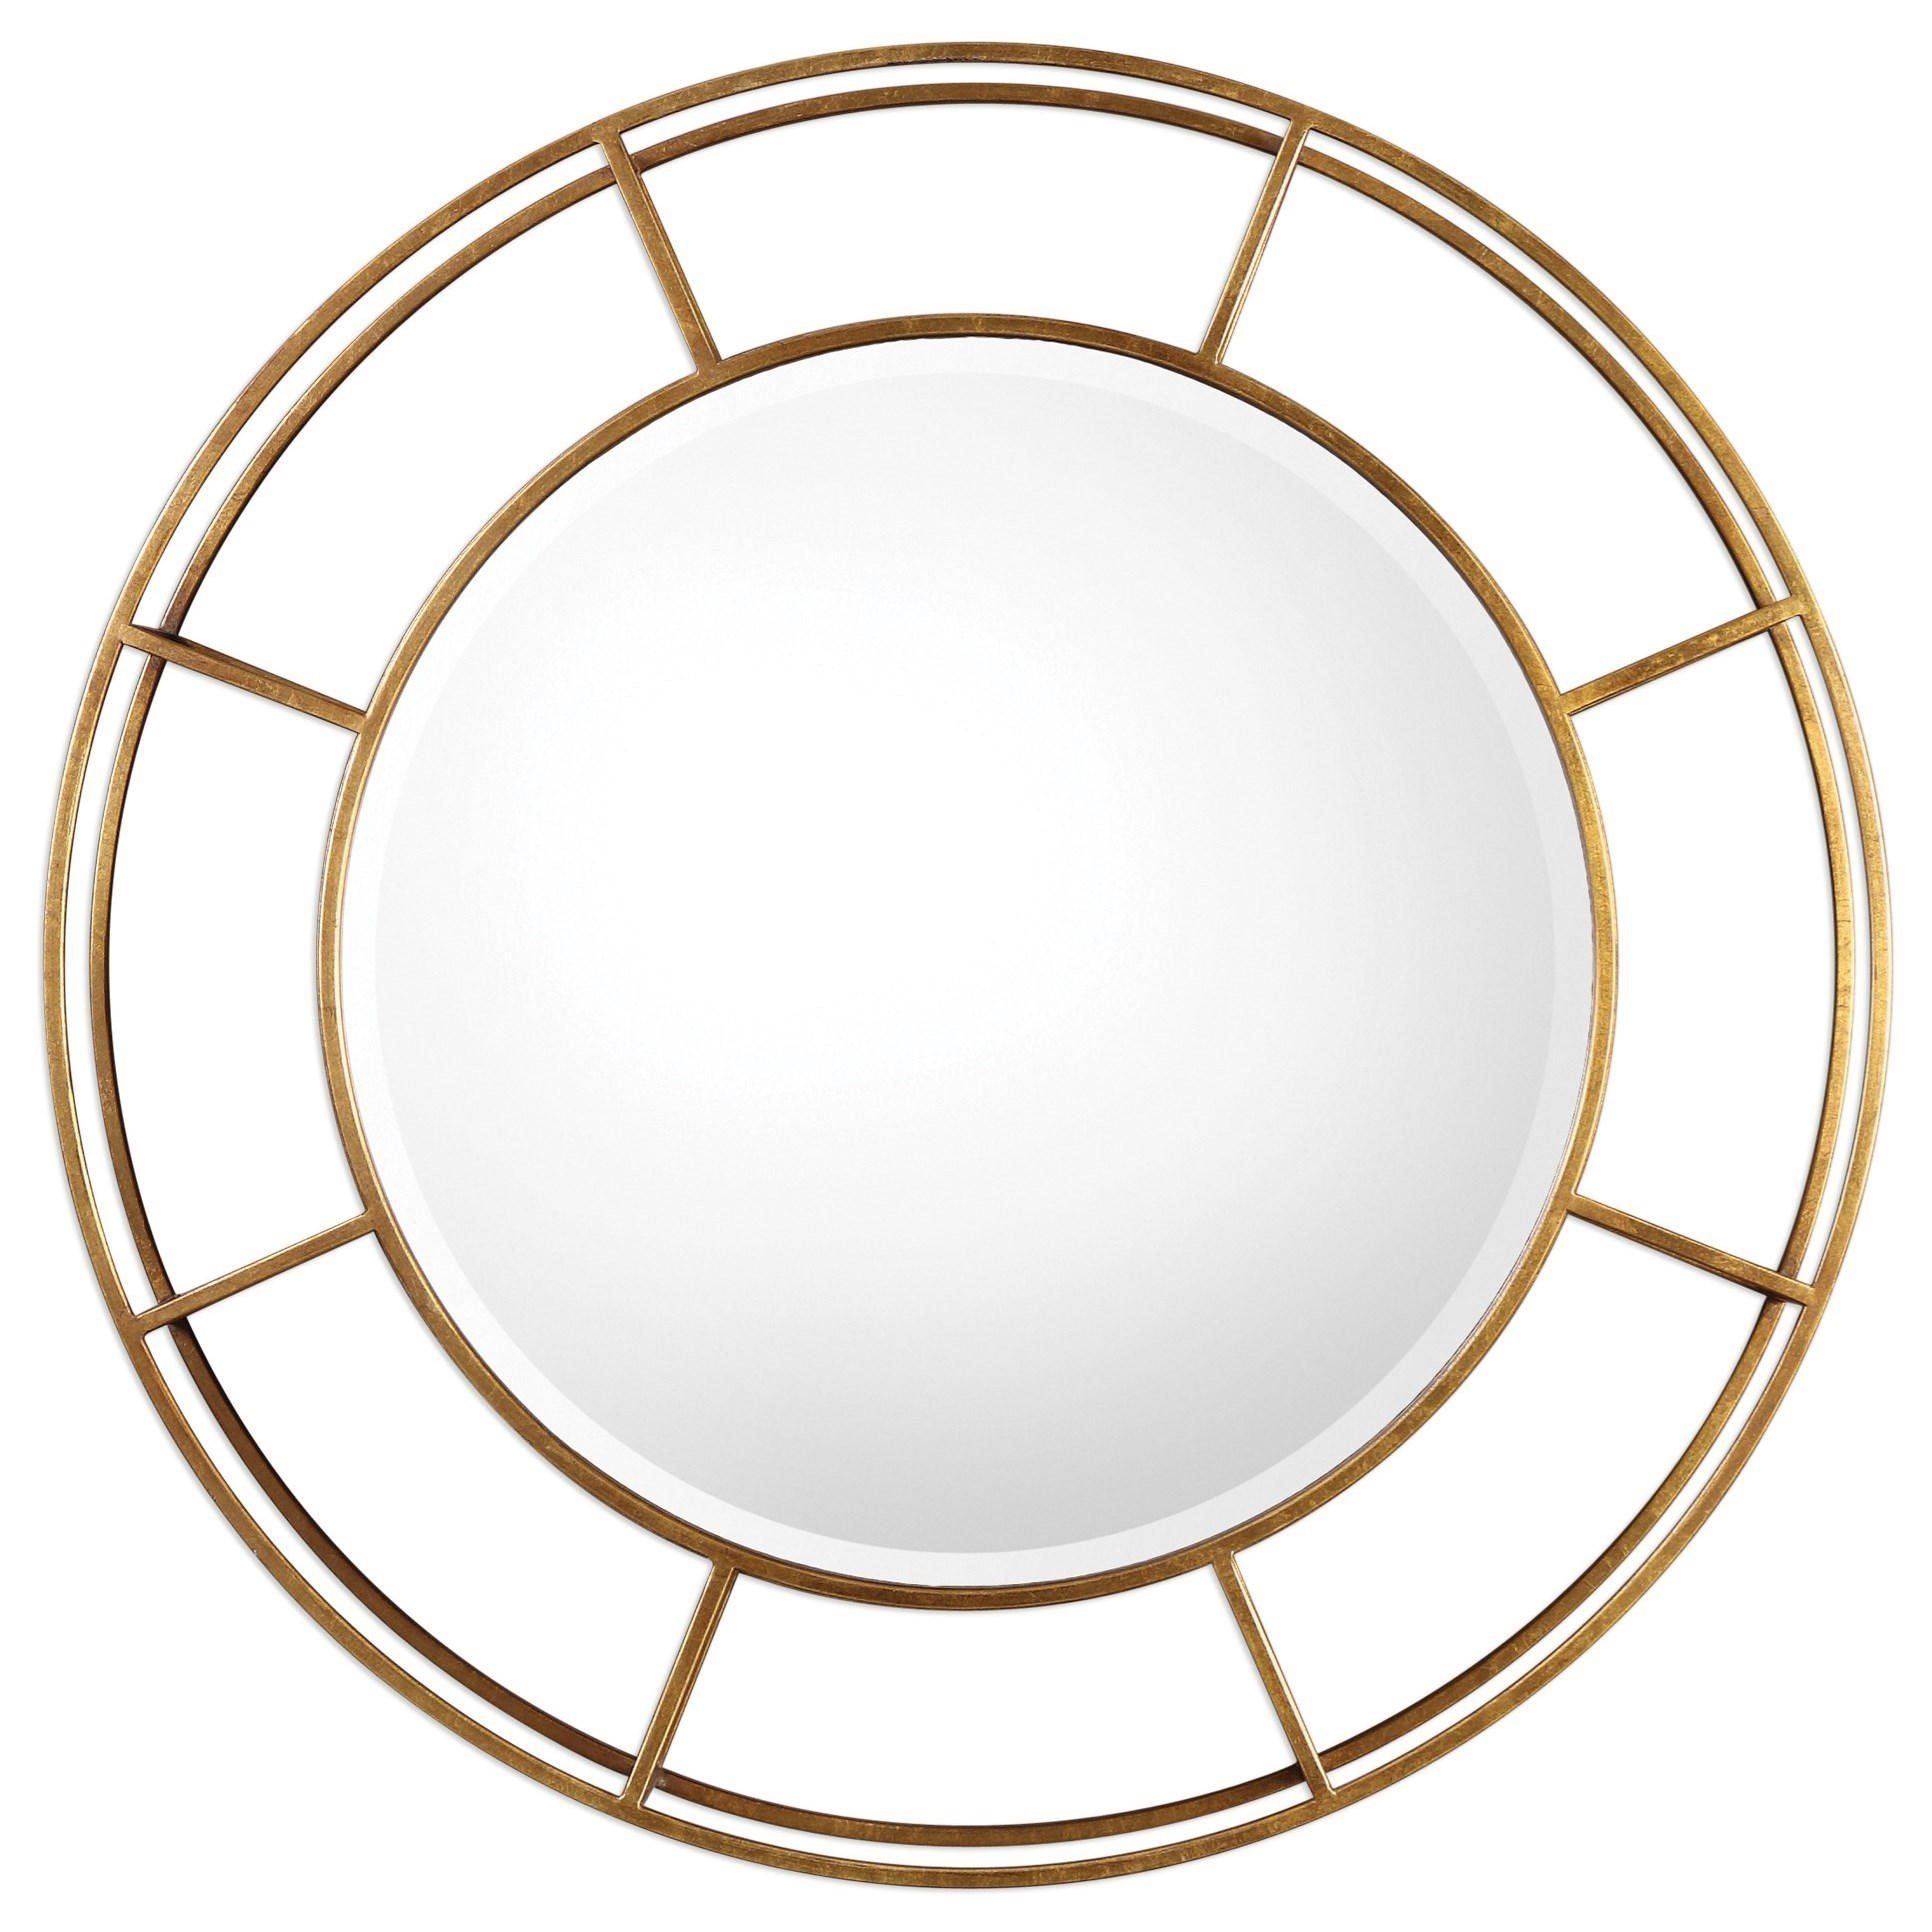 Uttermost Mirrors  Salleron Round Mirror - Item Number: 09147